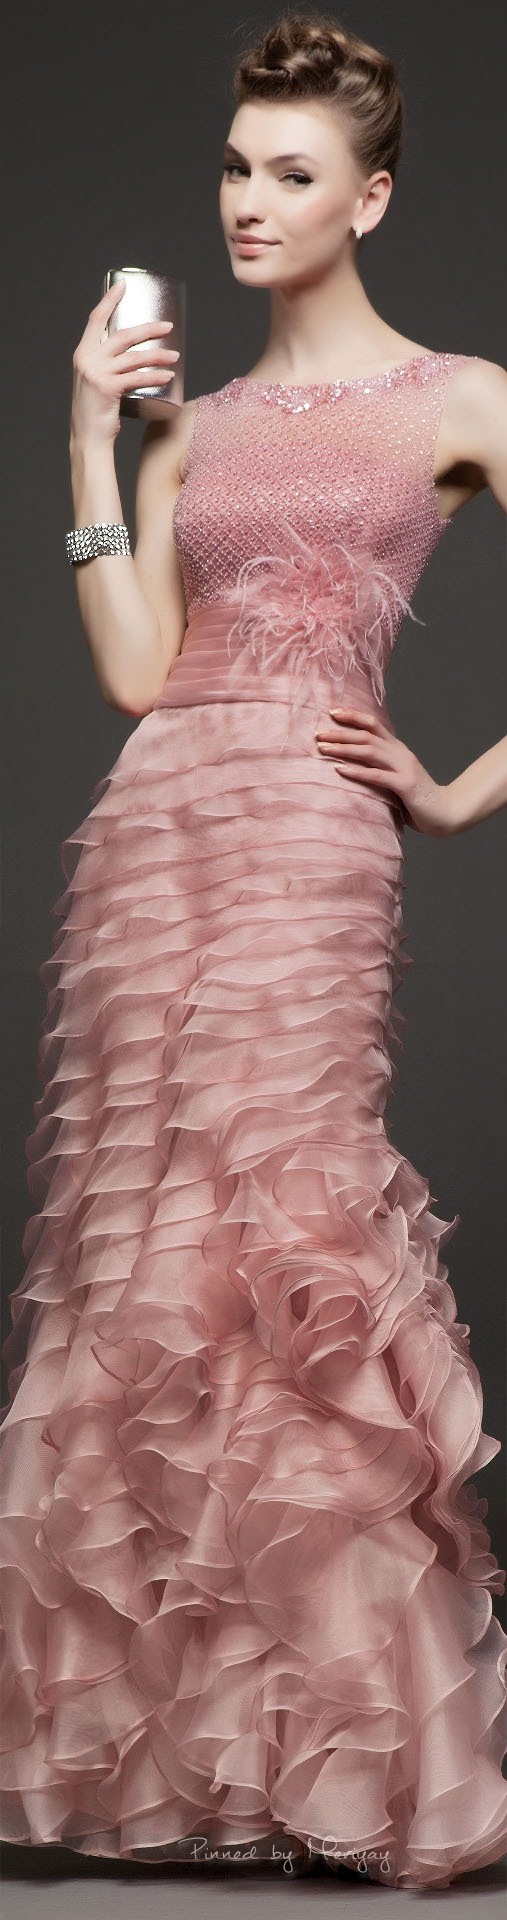 Rosa Clará ~ Spring Rose Gown w Layered Ruffle Skirt 2015 | Alta ...